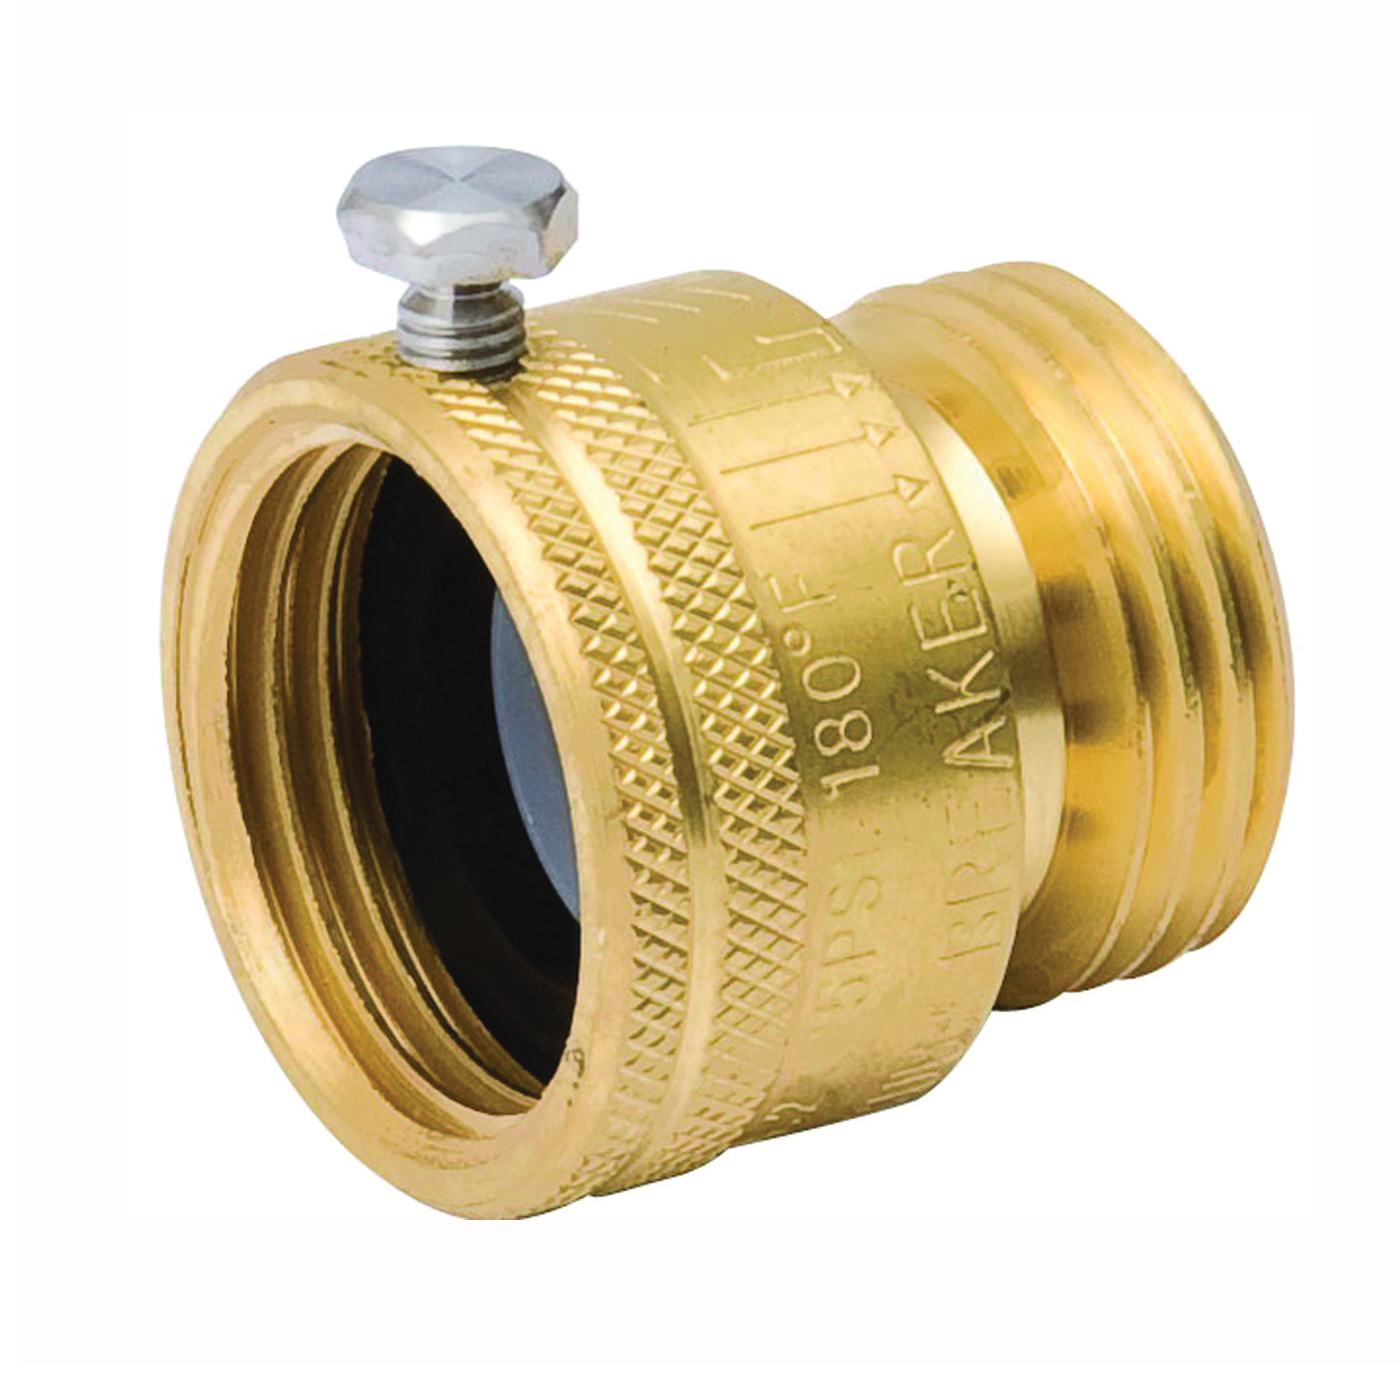 Picture of B & K ProLine 108-904RP Vacuum Breaker, 3/4 in Connection, MPT, Brass